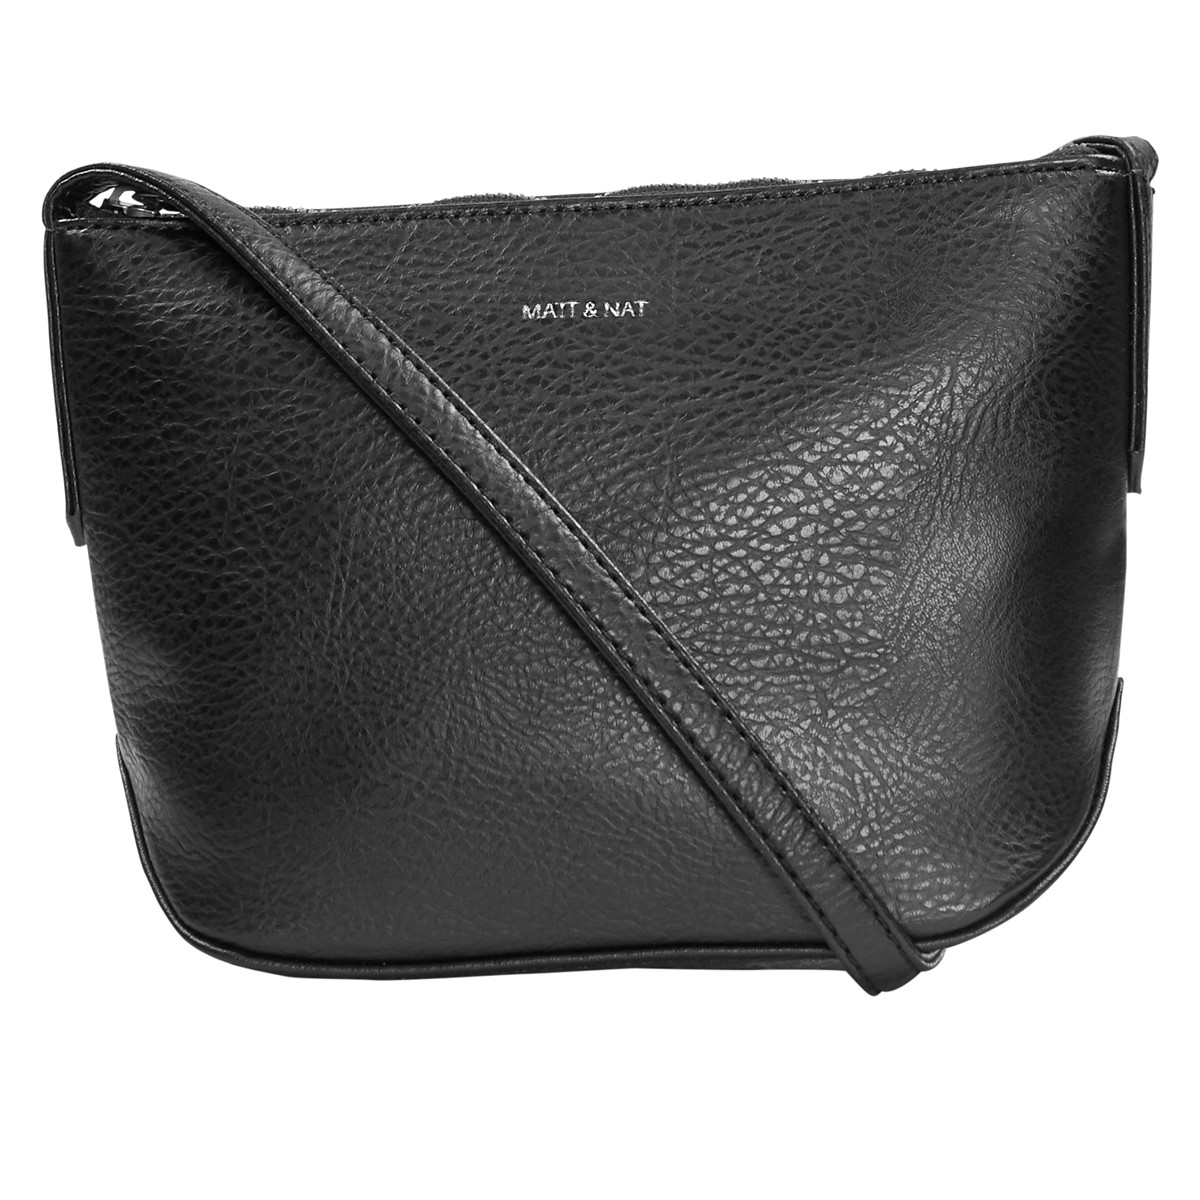 Sam Crossbody Bag in Black